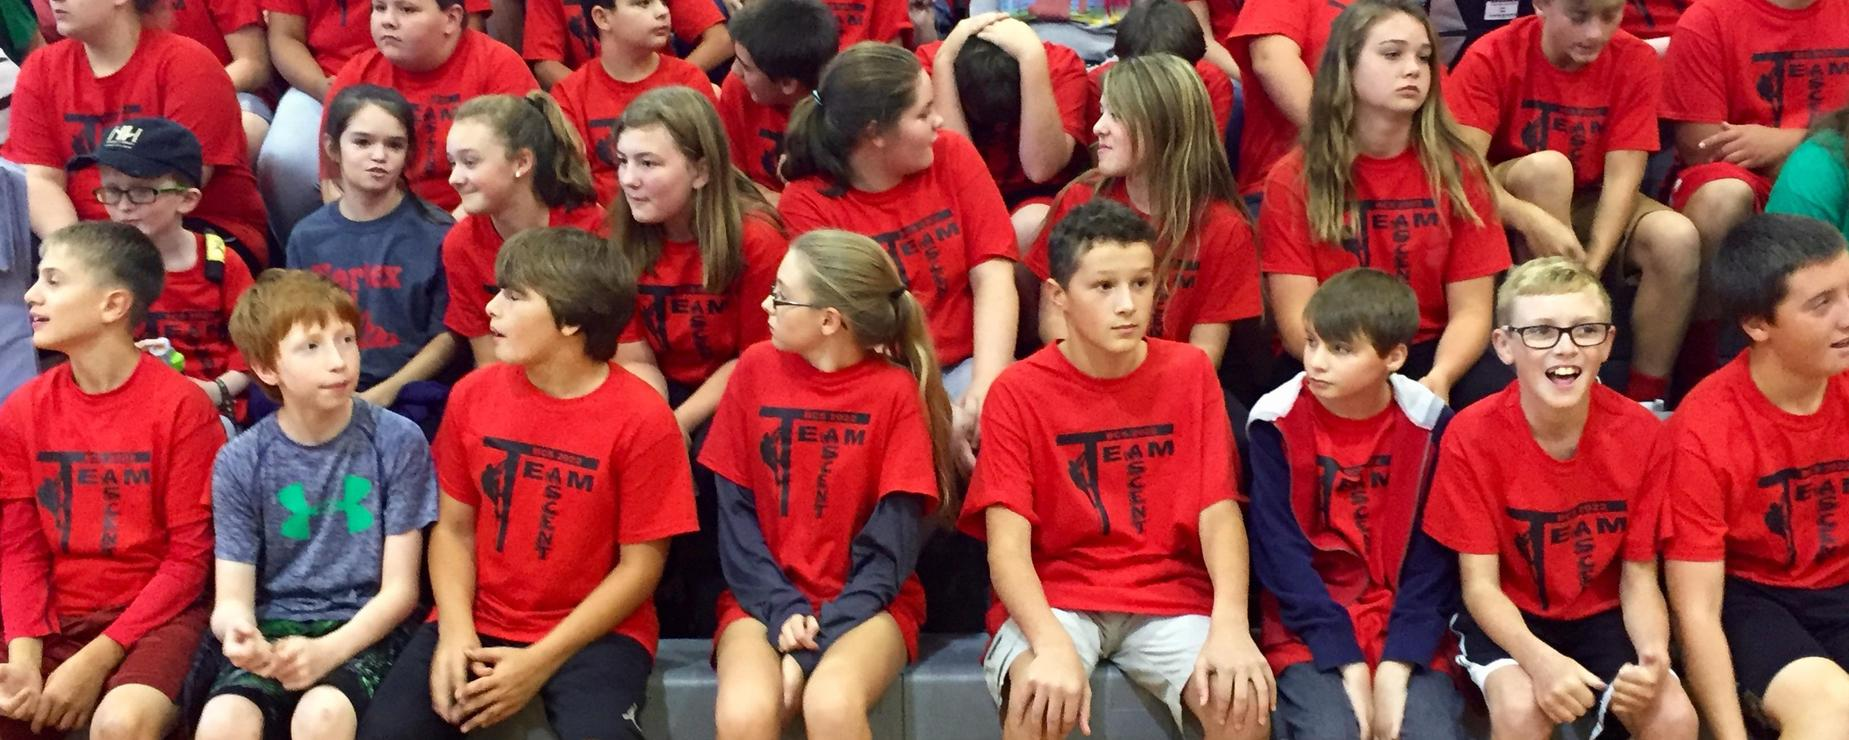 Seventh graders matching in their Team Ascent tee-shirts, waiting for an assembly